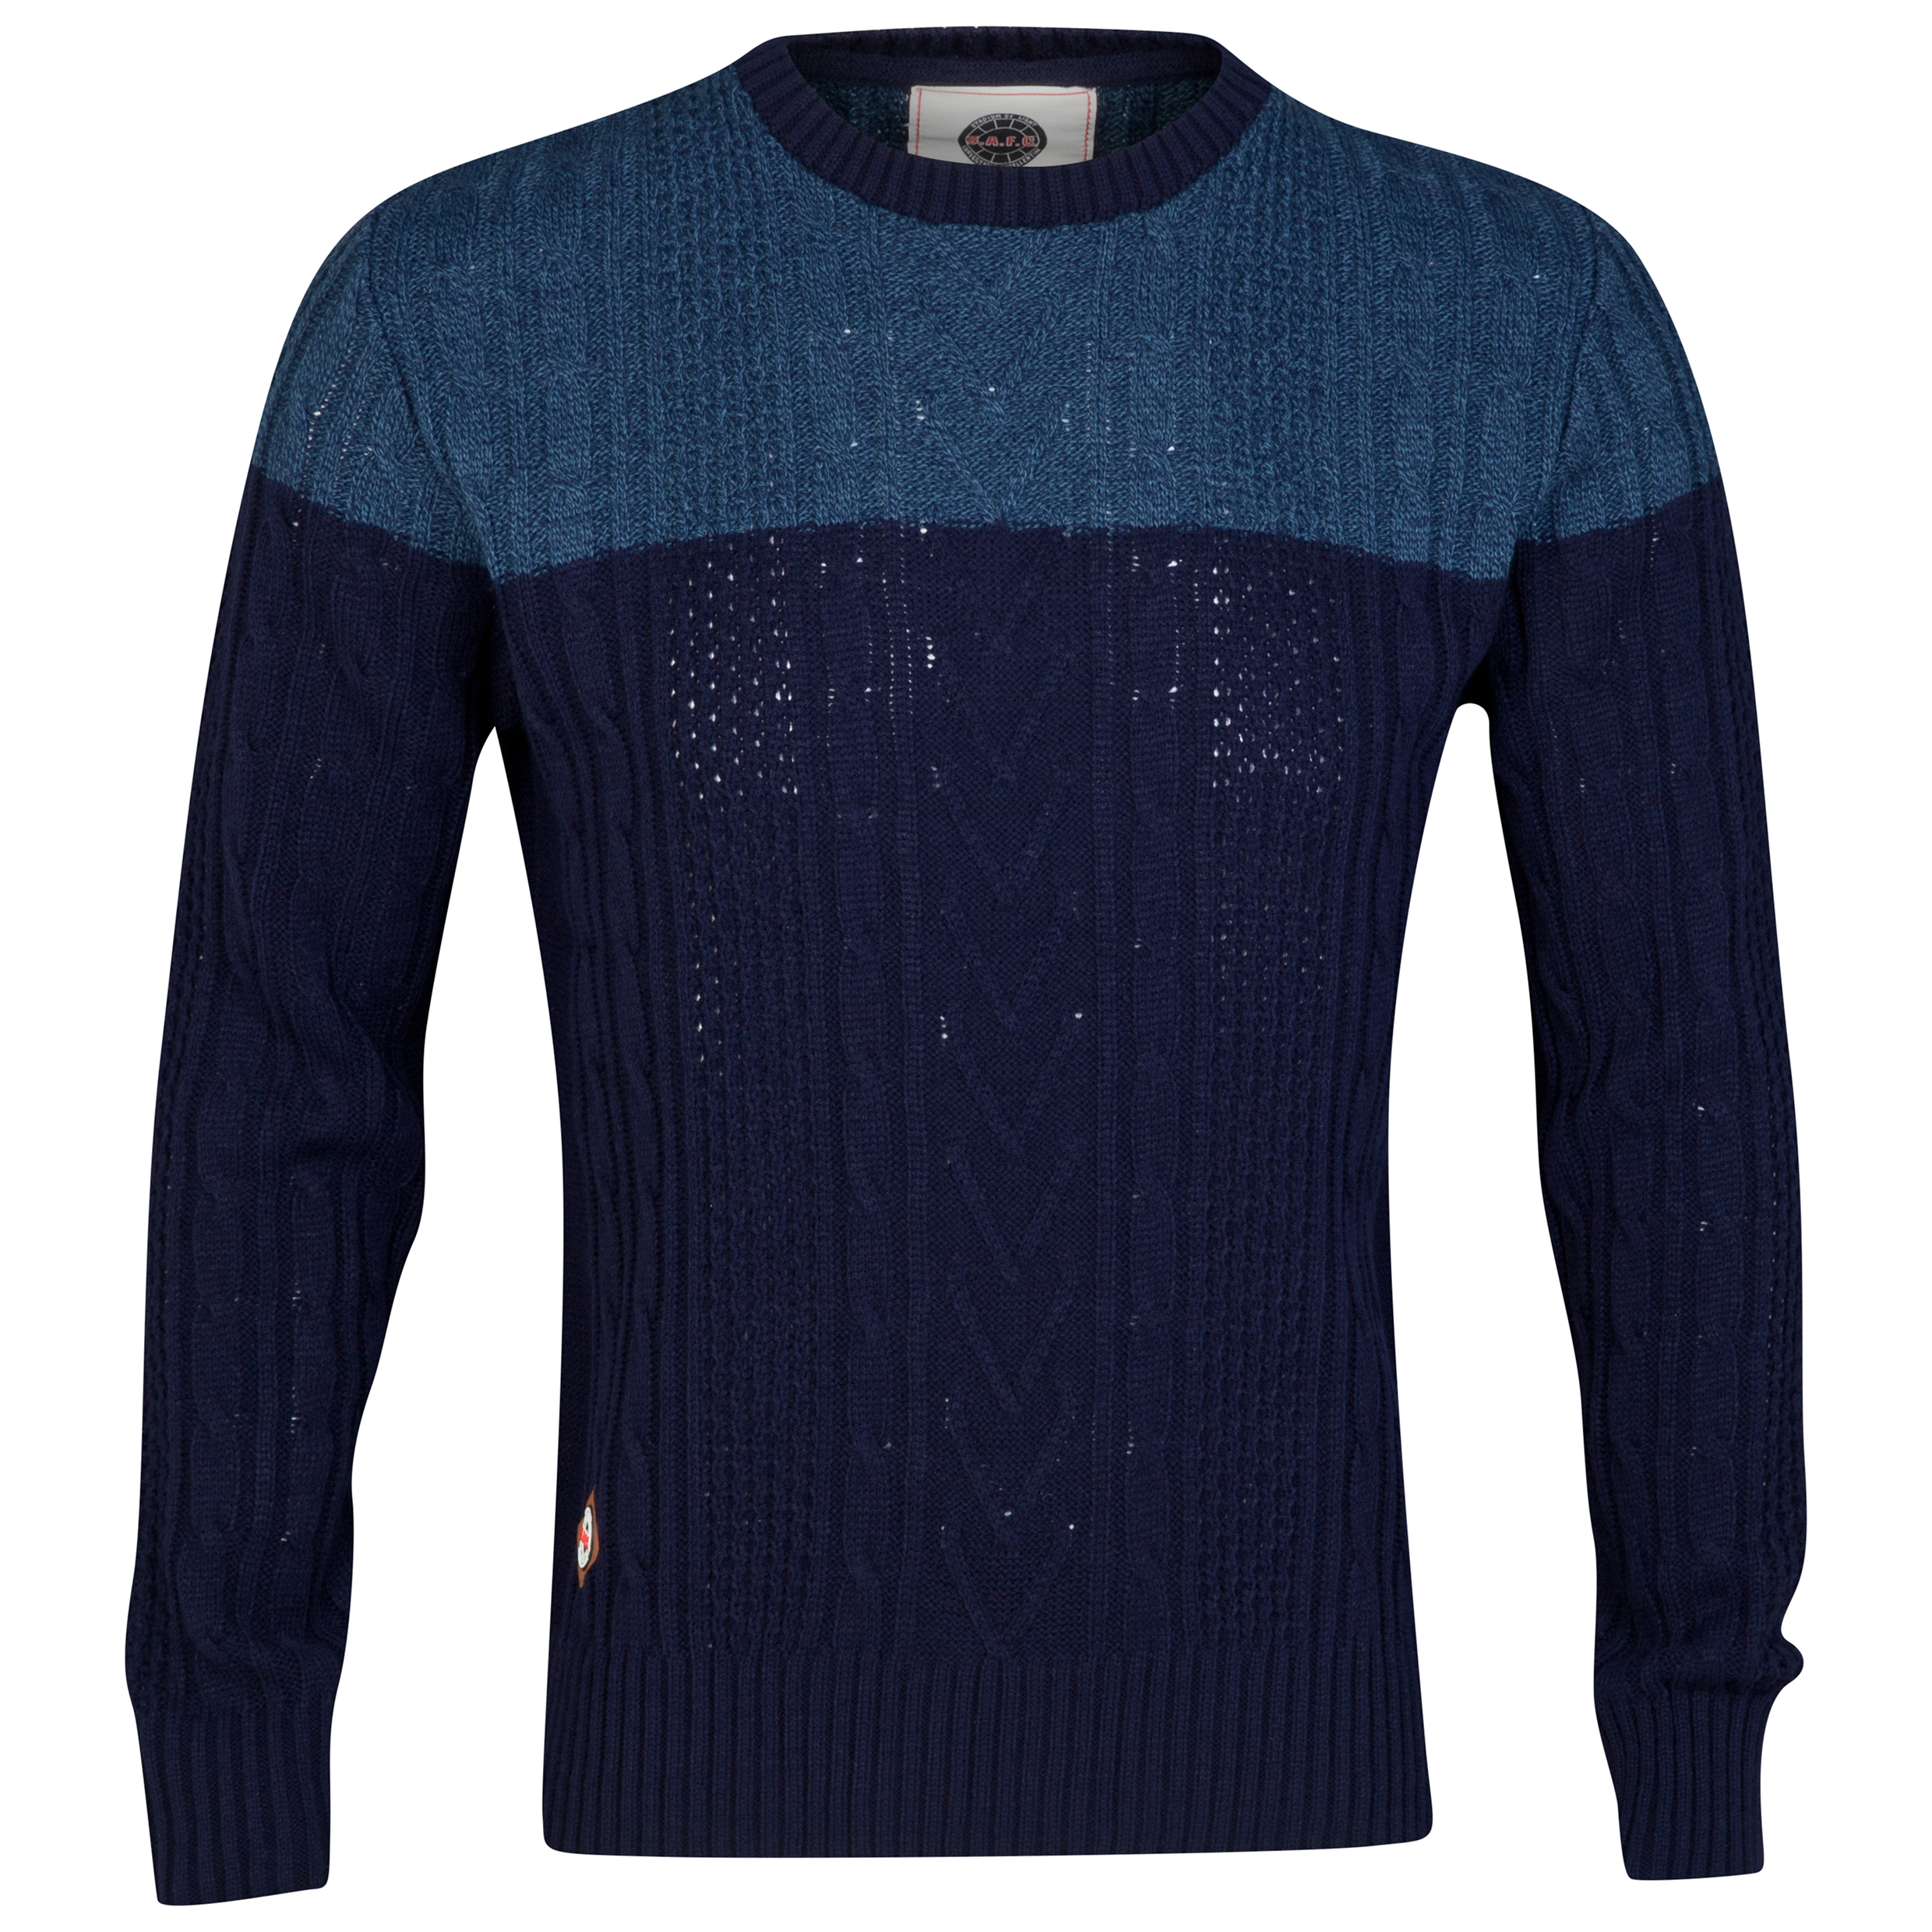 Sunderland Jumper - Navy/Grey - Mens